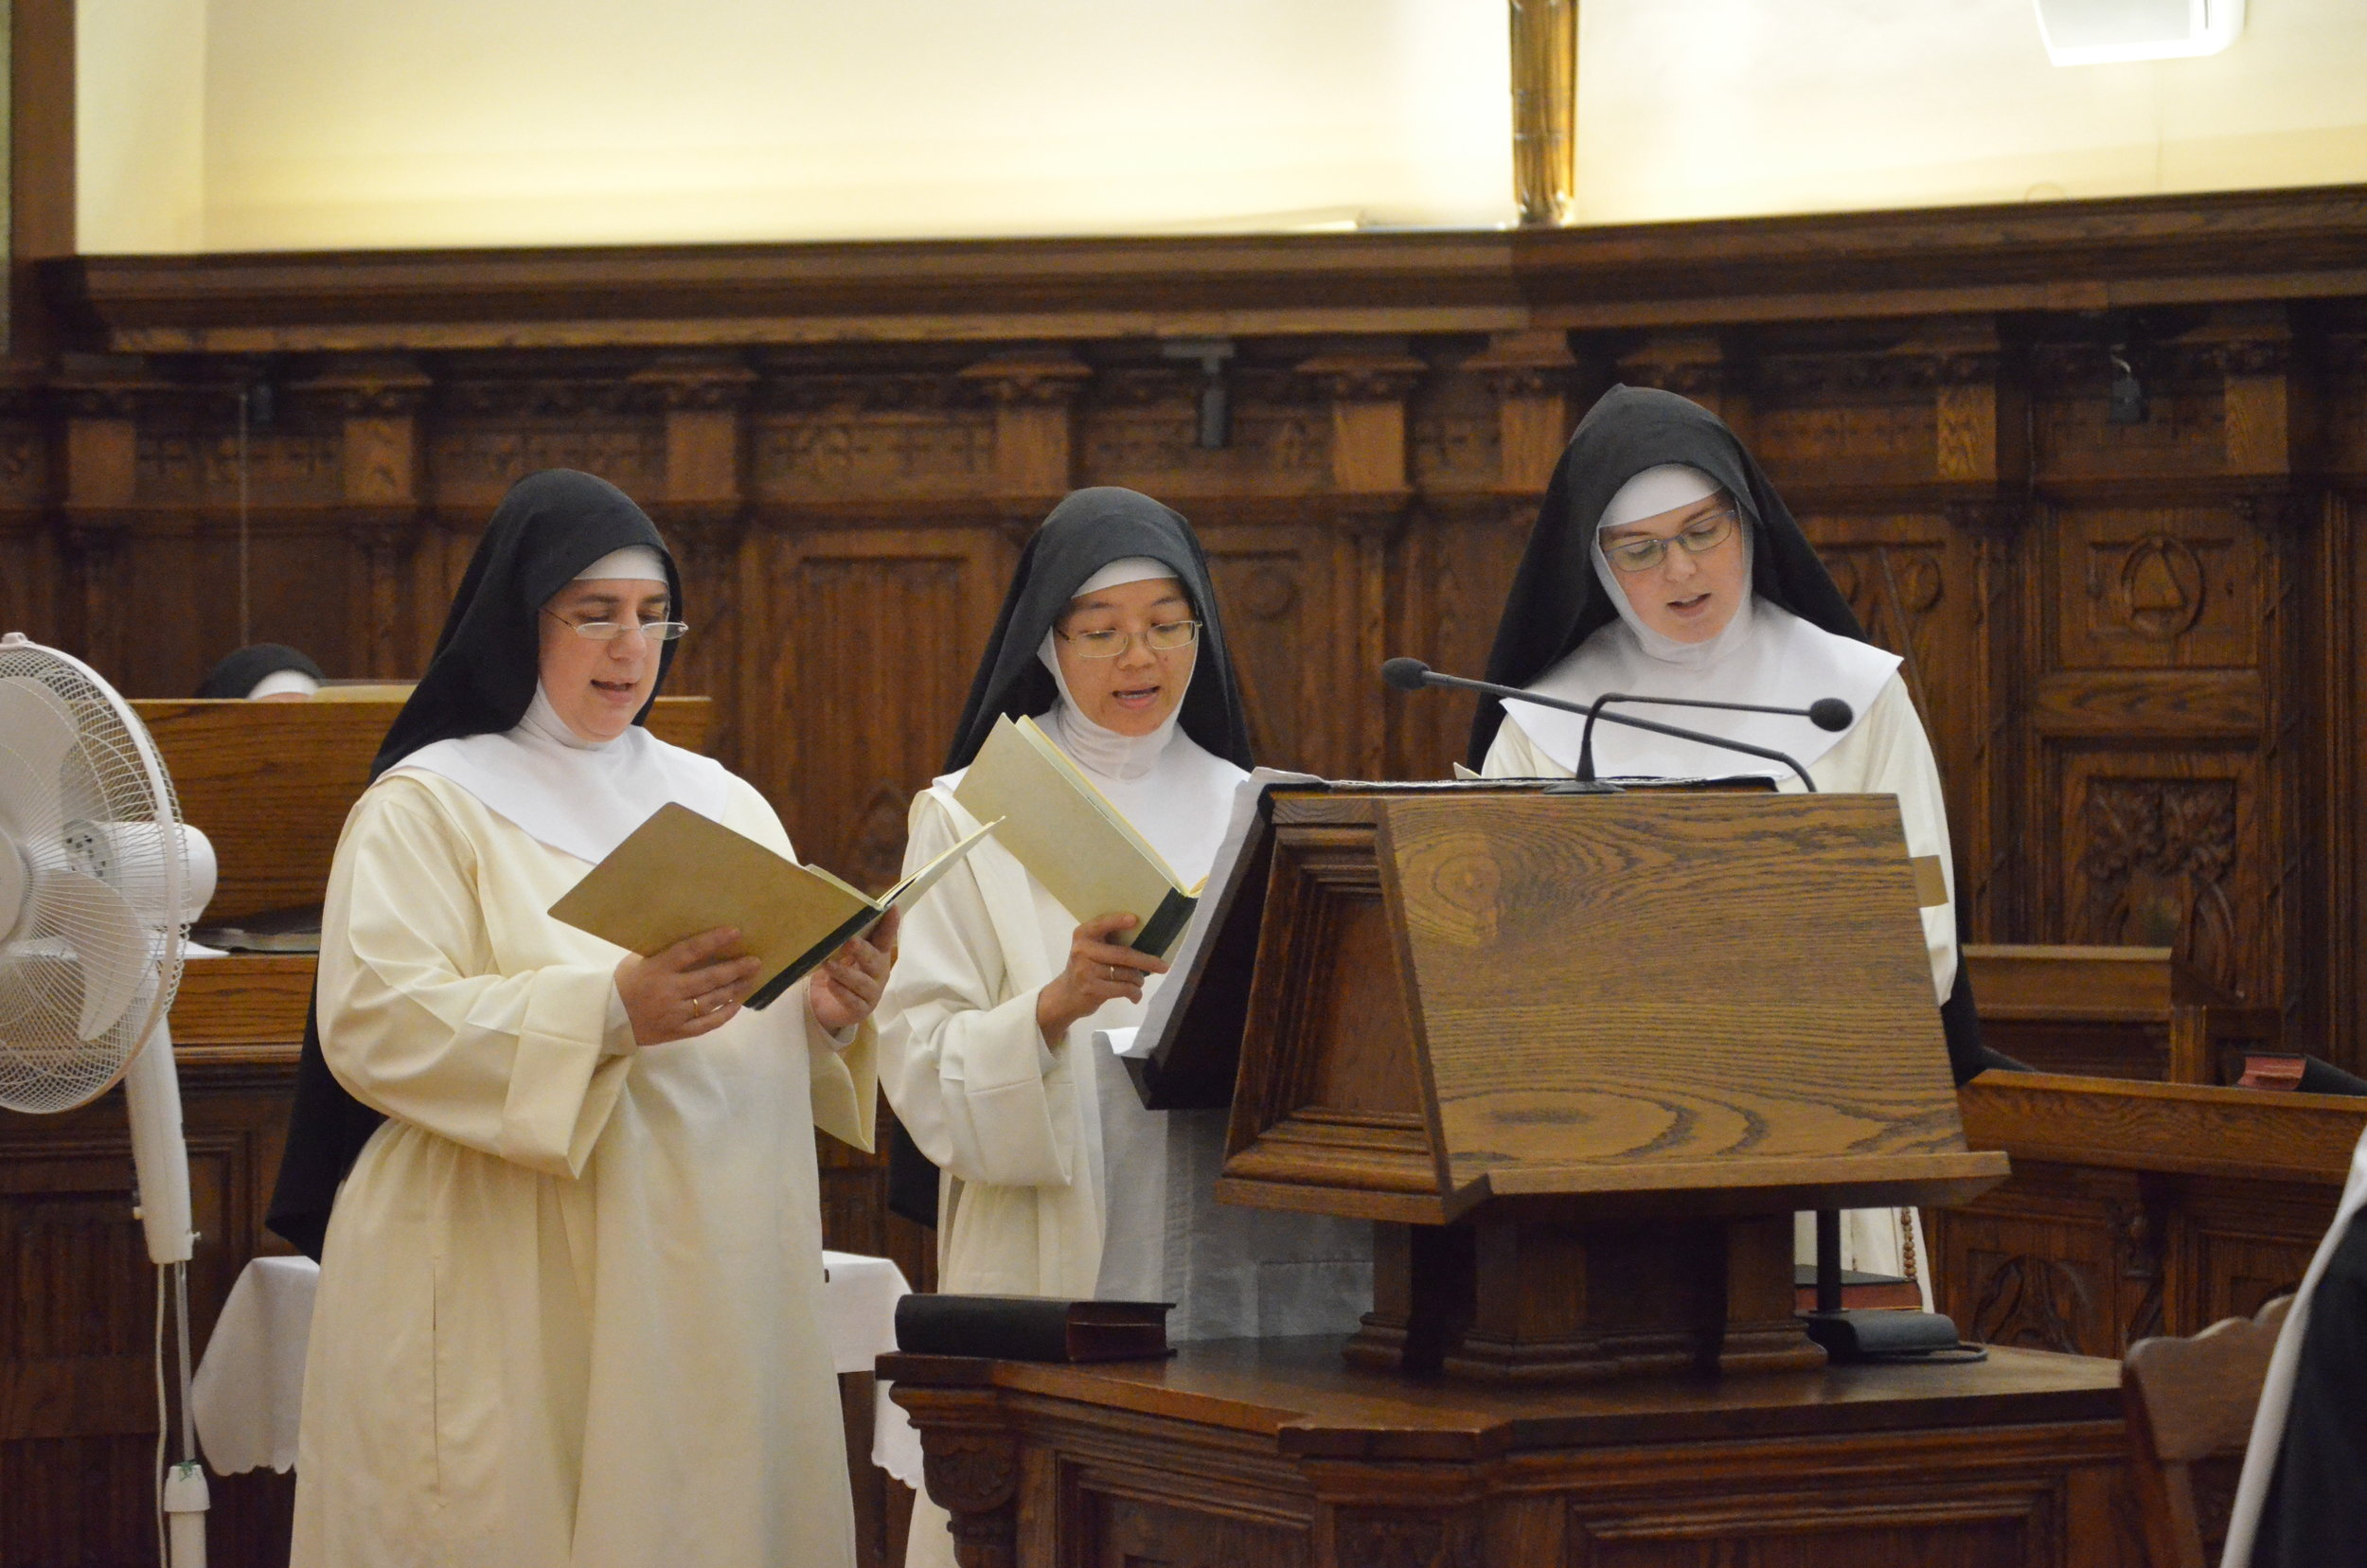 Chantresses sing the responsorial psalm